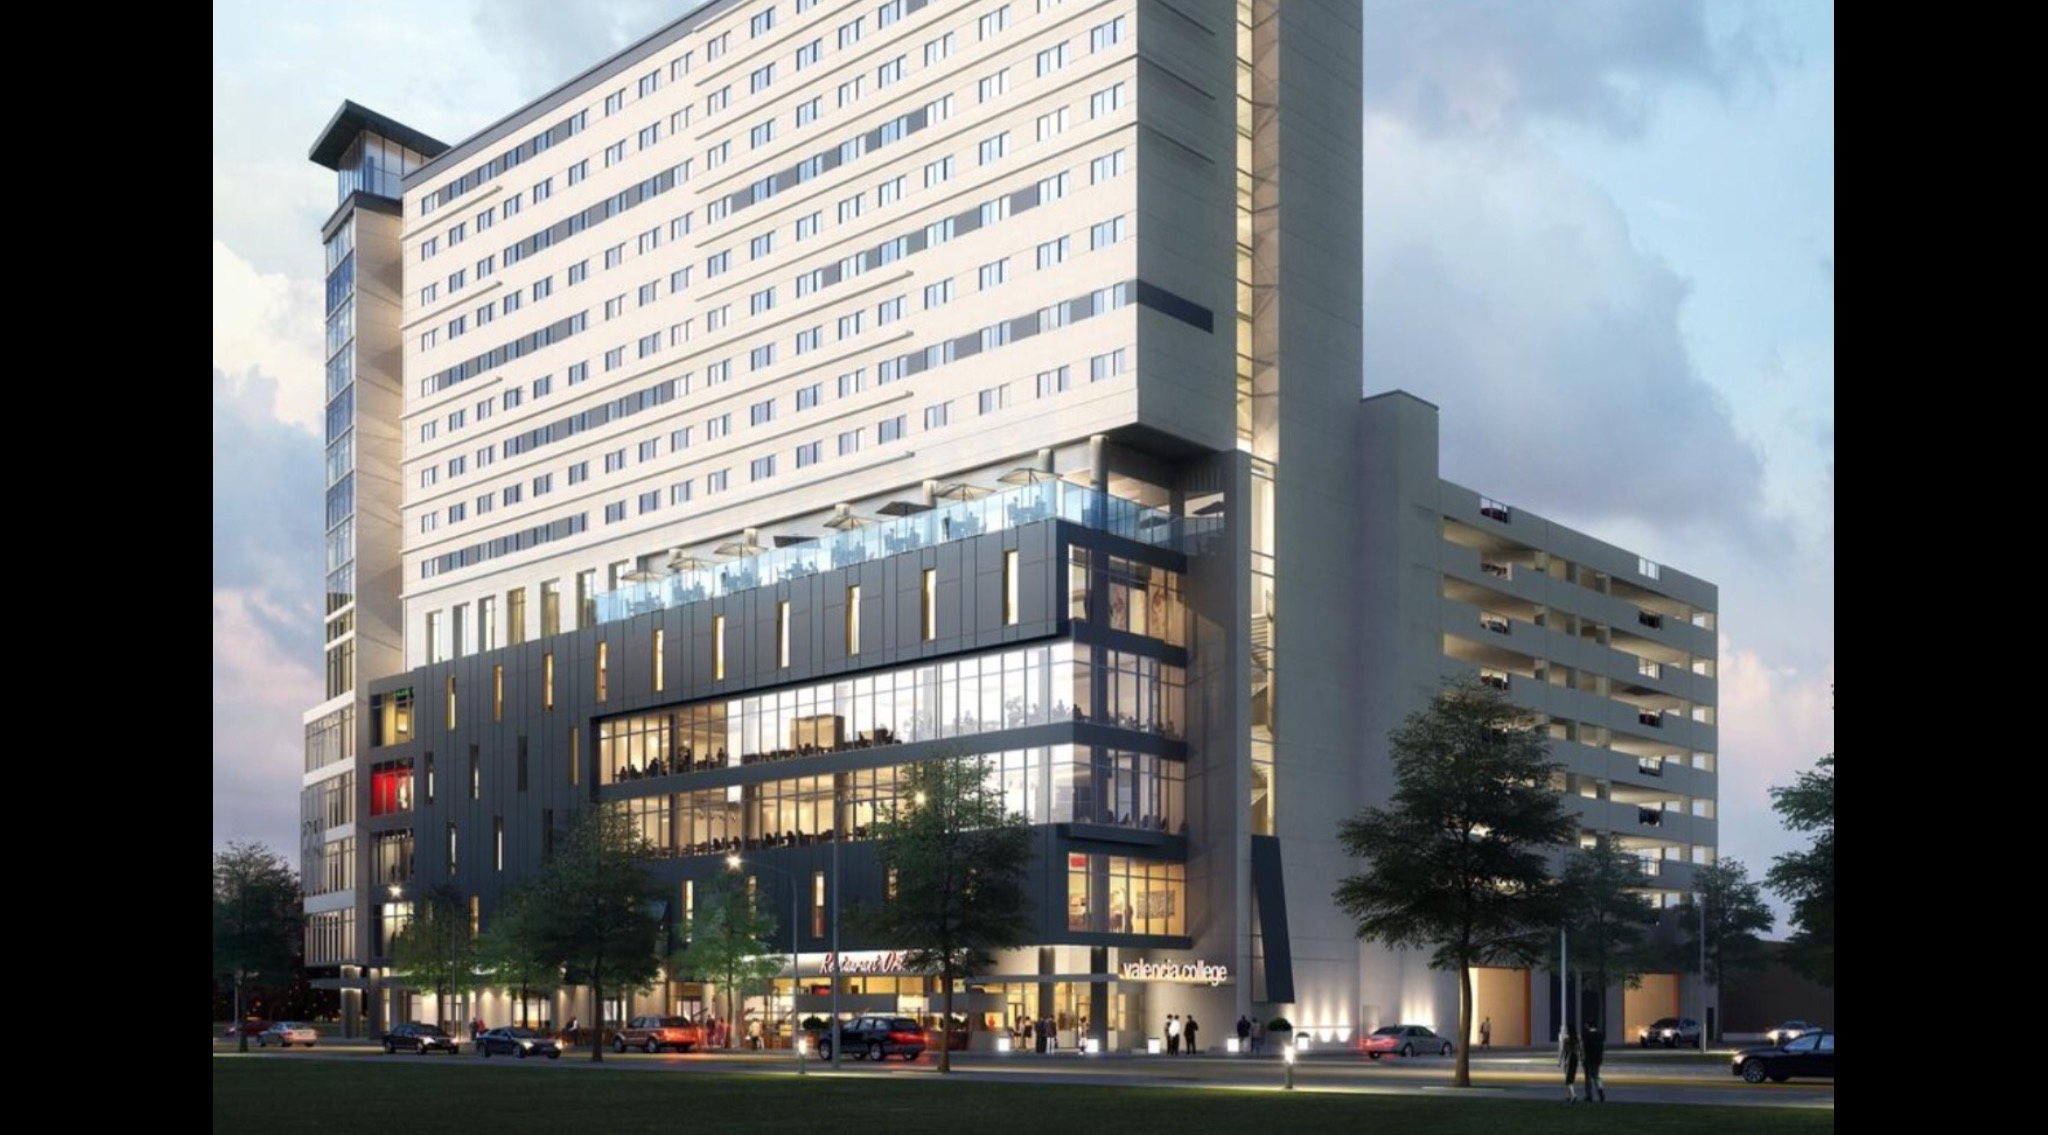 Ucf Valencia Downtown Student Housing Project Approved By City Of Orlando Knightnews Com